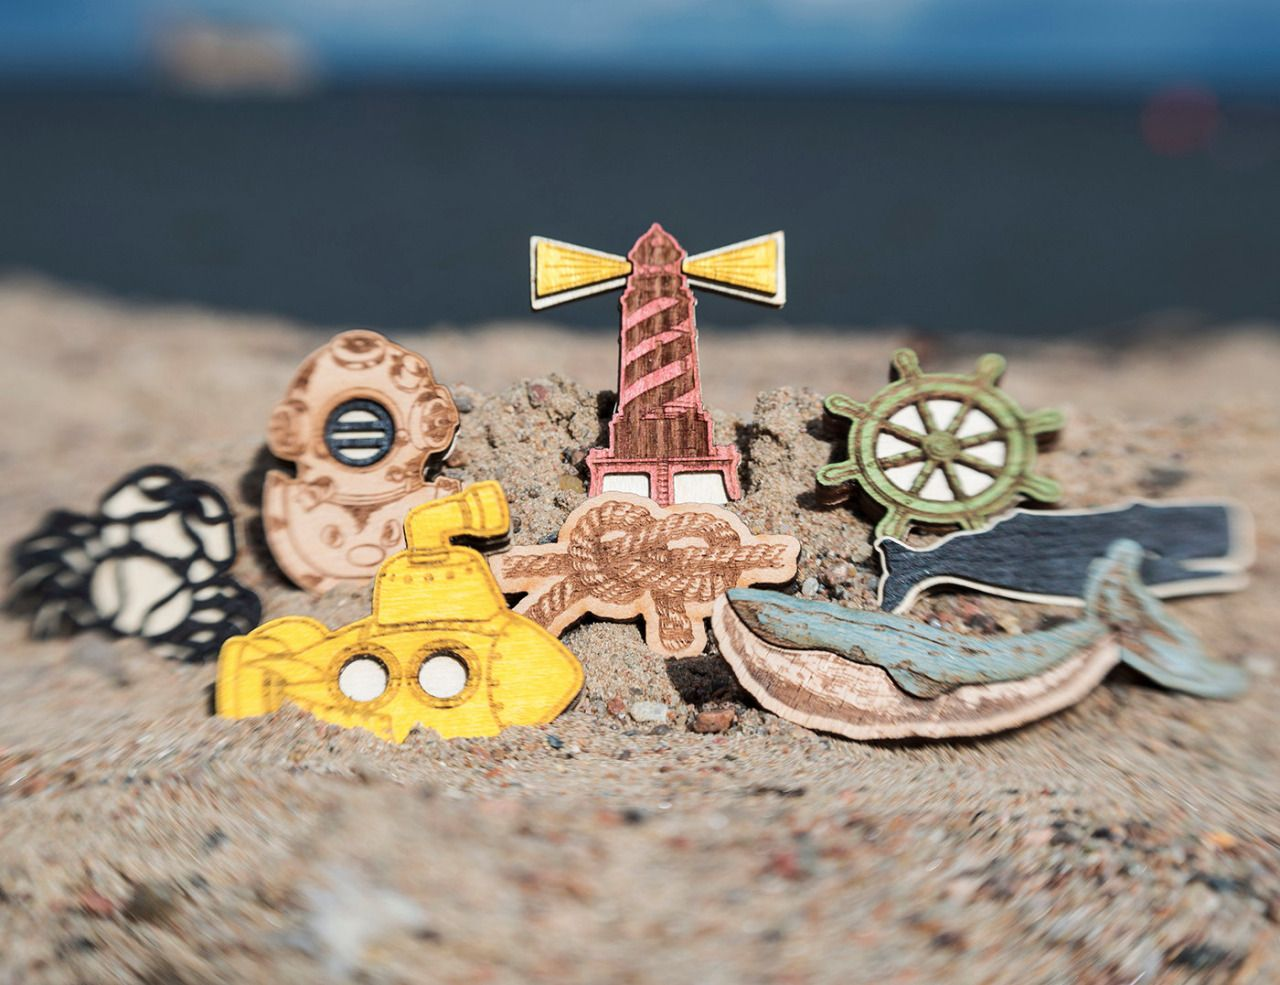 http://sosuperawesome.com/post/135381581402/wooden-brooches-by-wafwafgoods-on-etsy-so-super